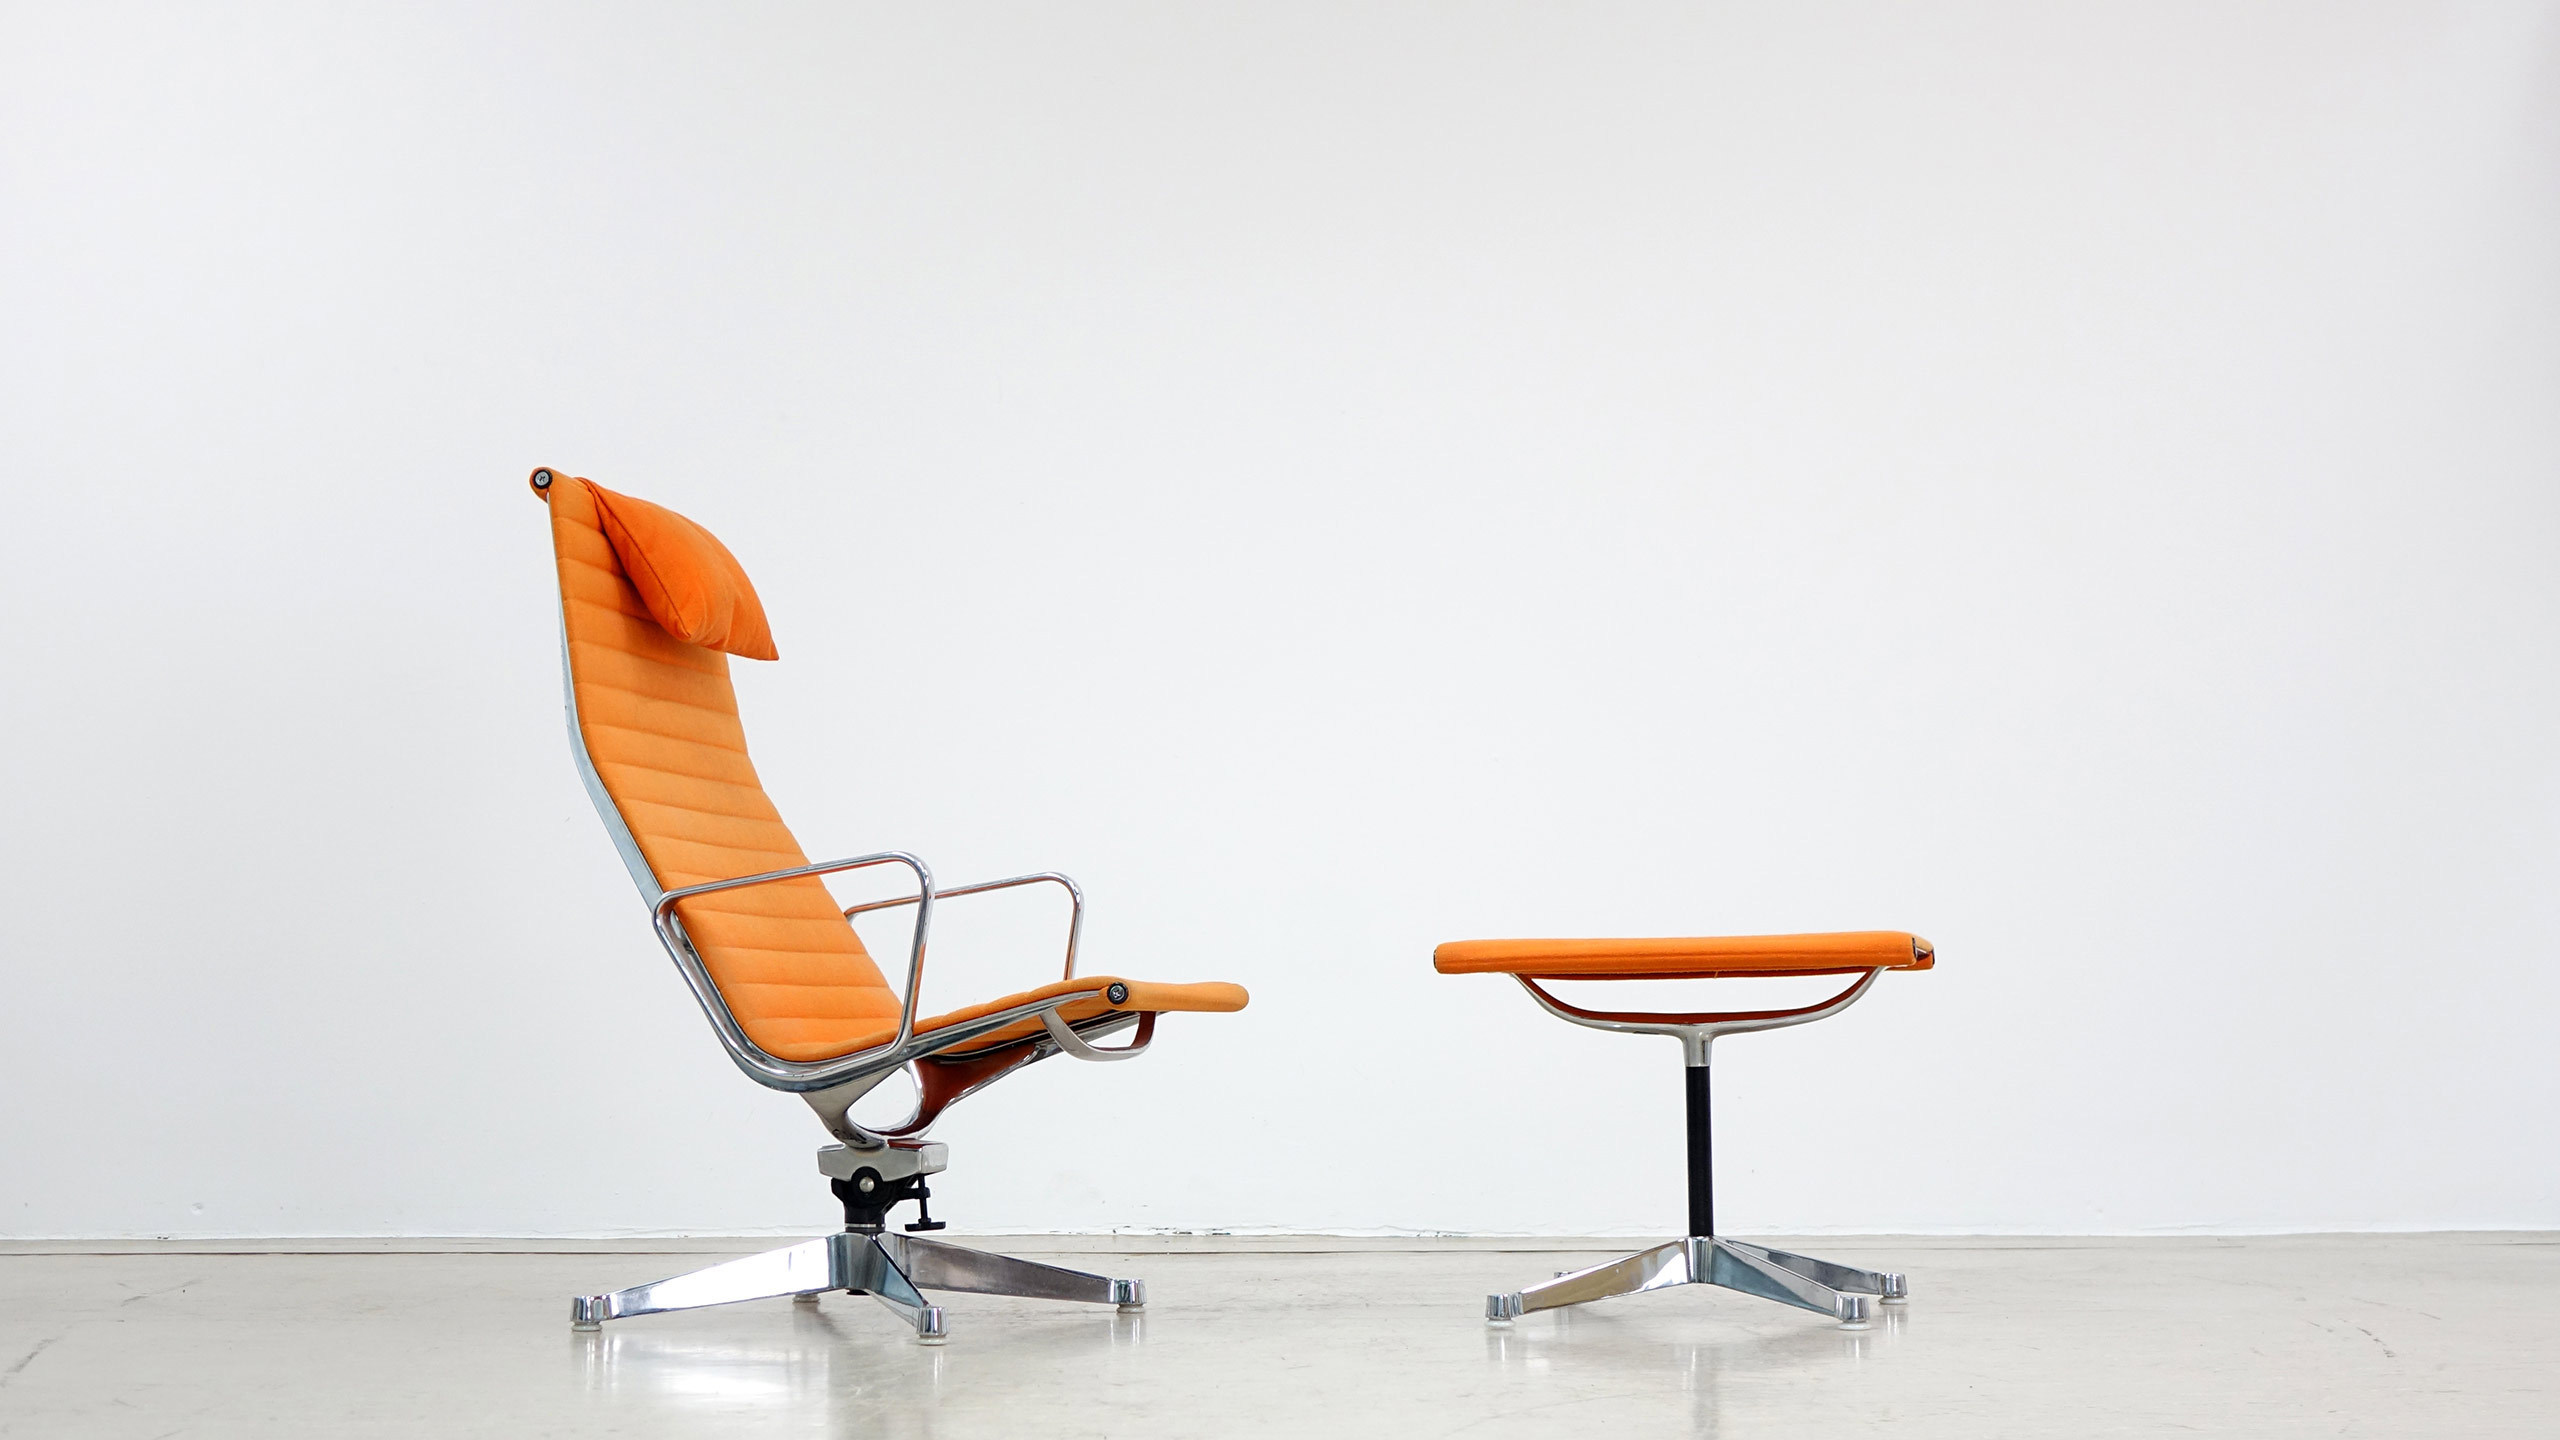 Charles eames alu lounge chair and ottoman zorrobot for Eames chair prix